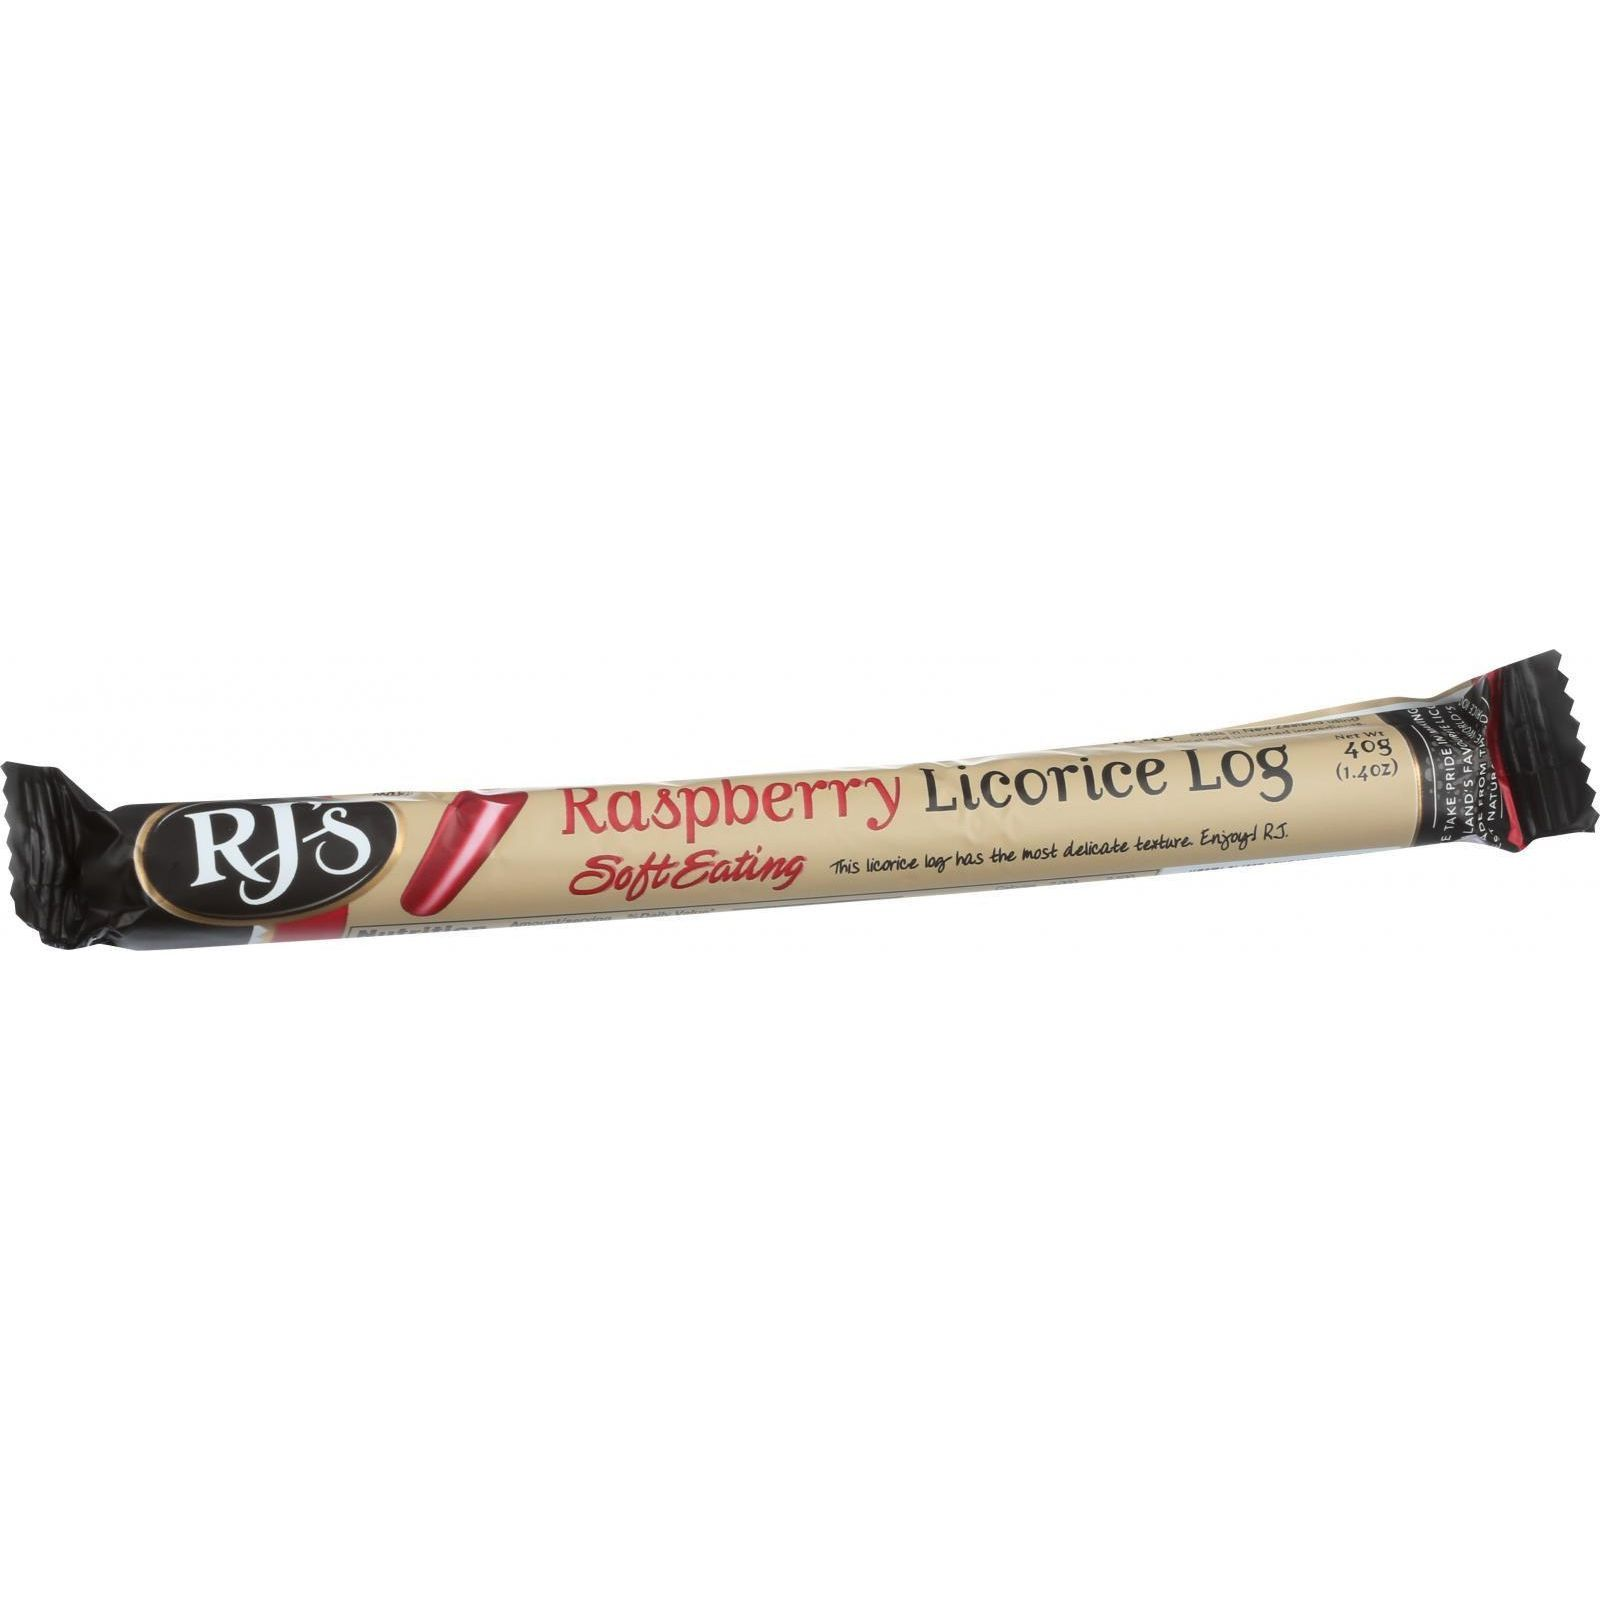 RJ's Raspberry Licorice Log (7 LEFT!)